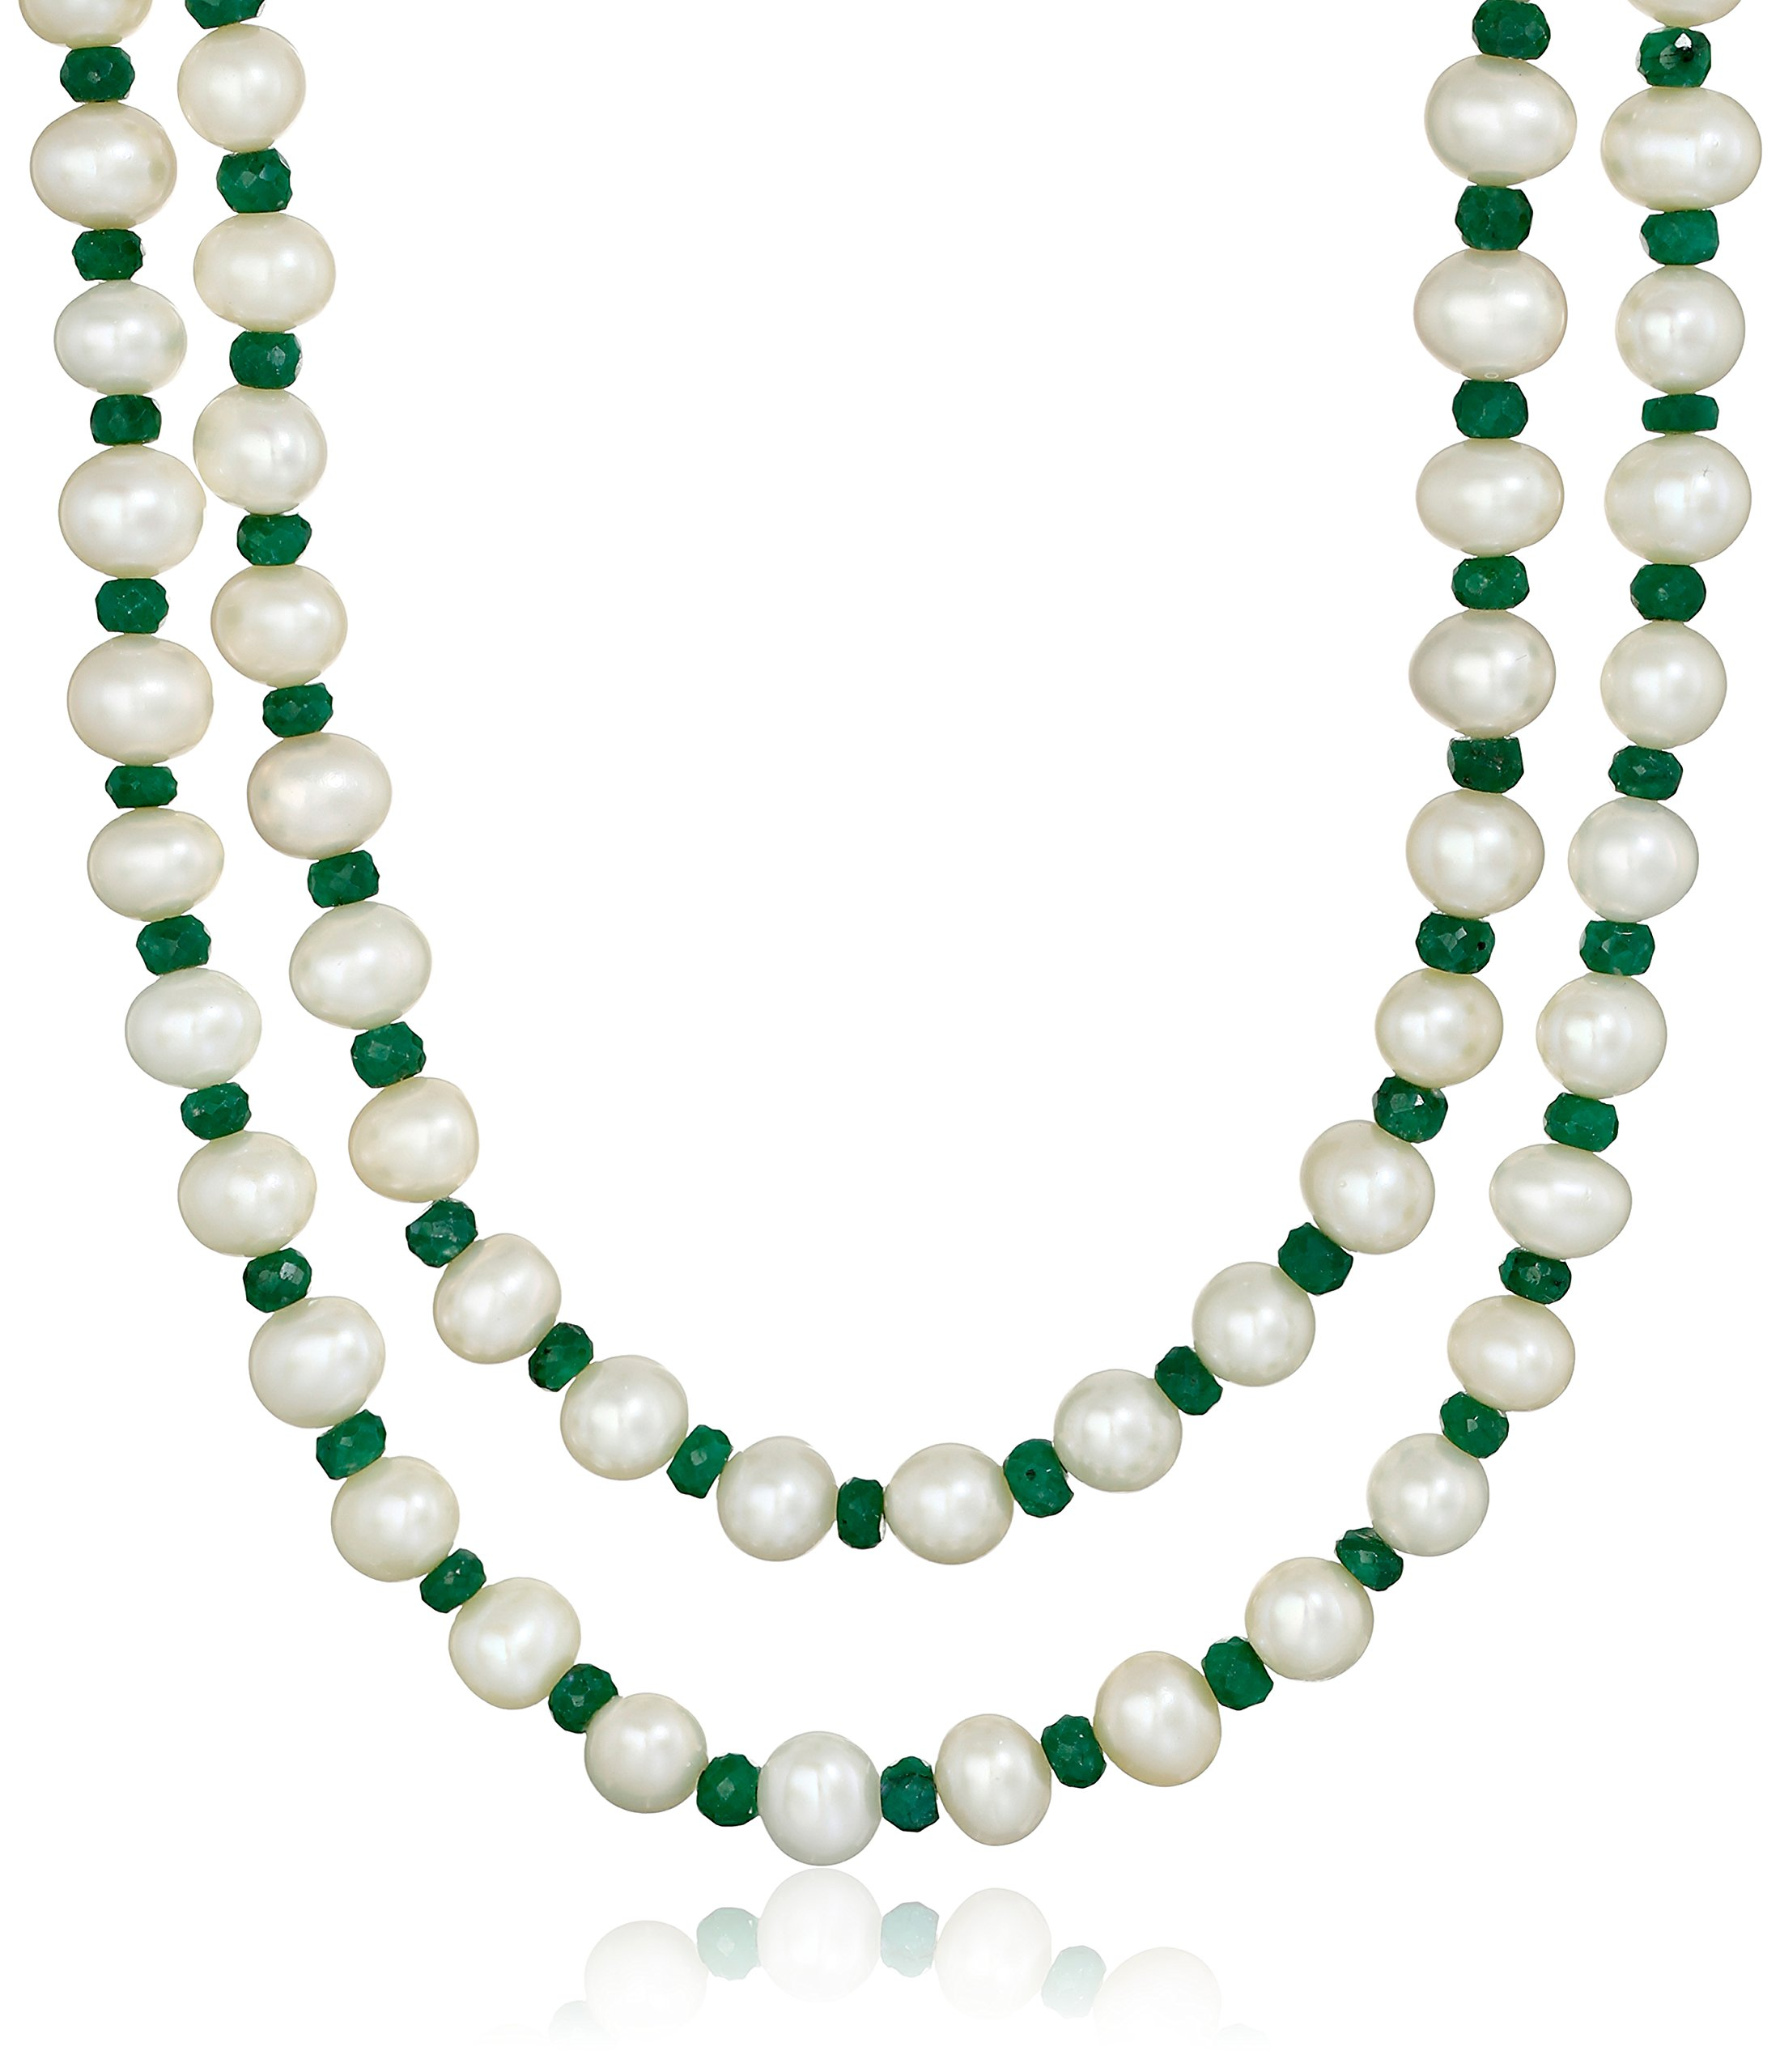 7-7.5mm White Cultured Freshwater Pearls with 4-5mm Green Emerald Gemstone Endless Strand Necklace, 50'' by Amazon Collection